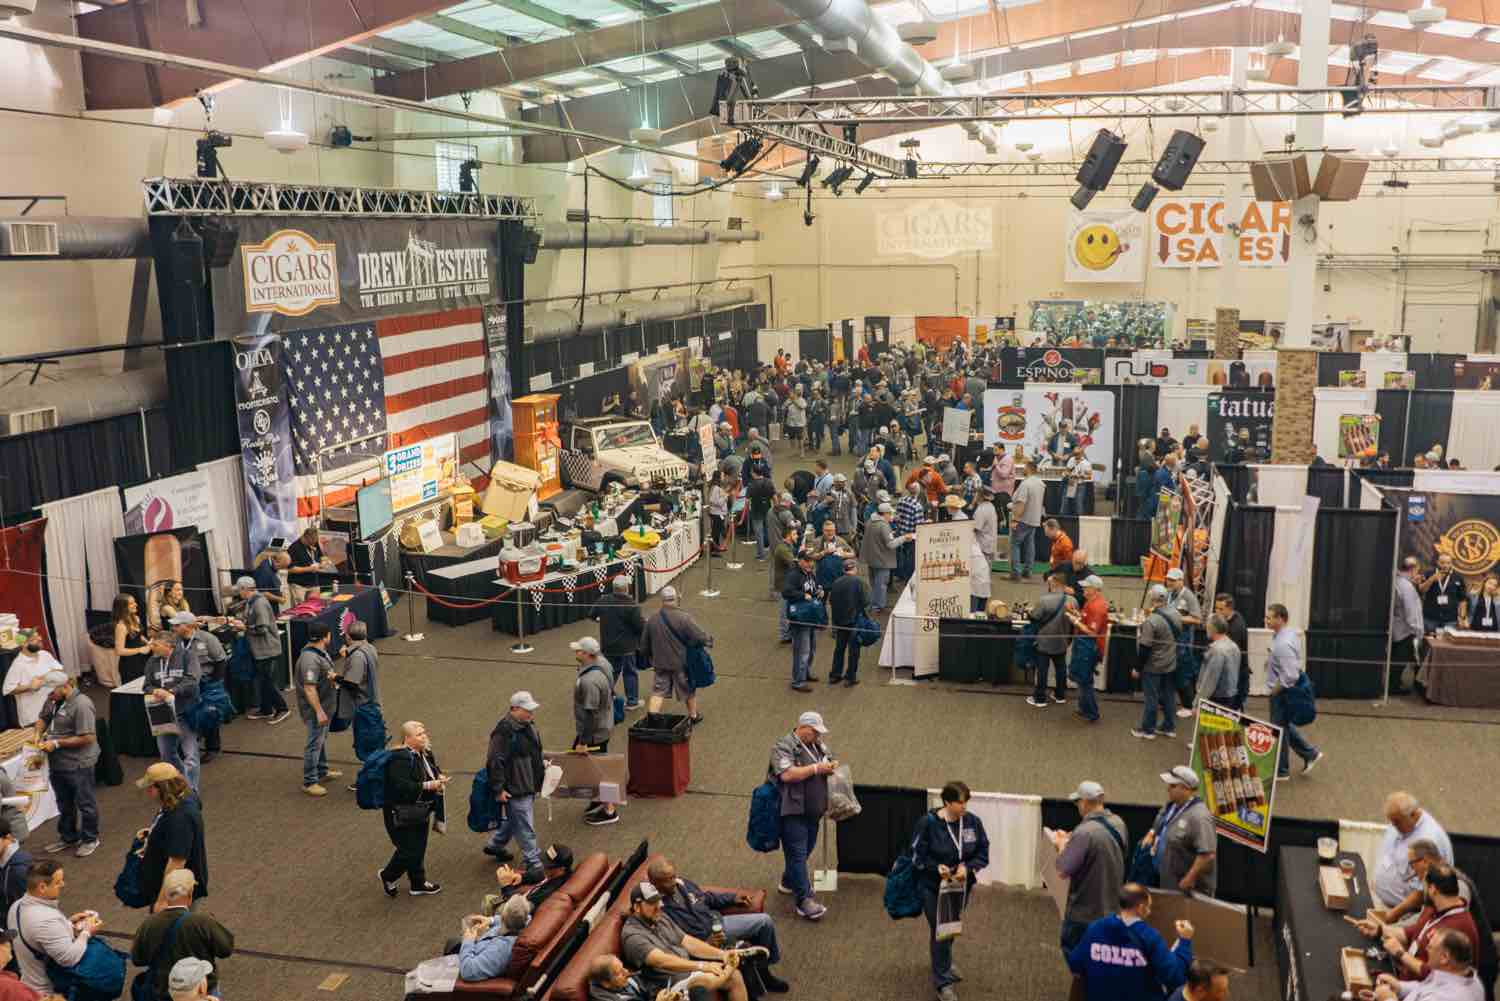 Cigar News: CIGARFest 2020 Cancelled